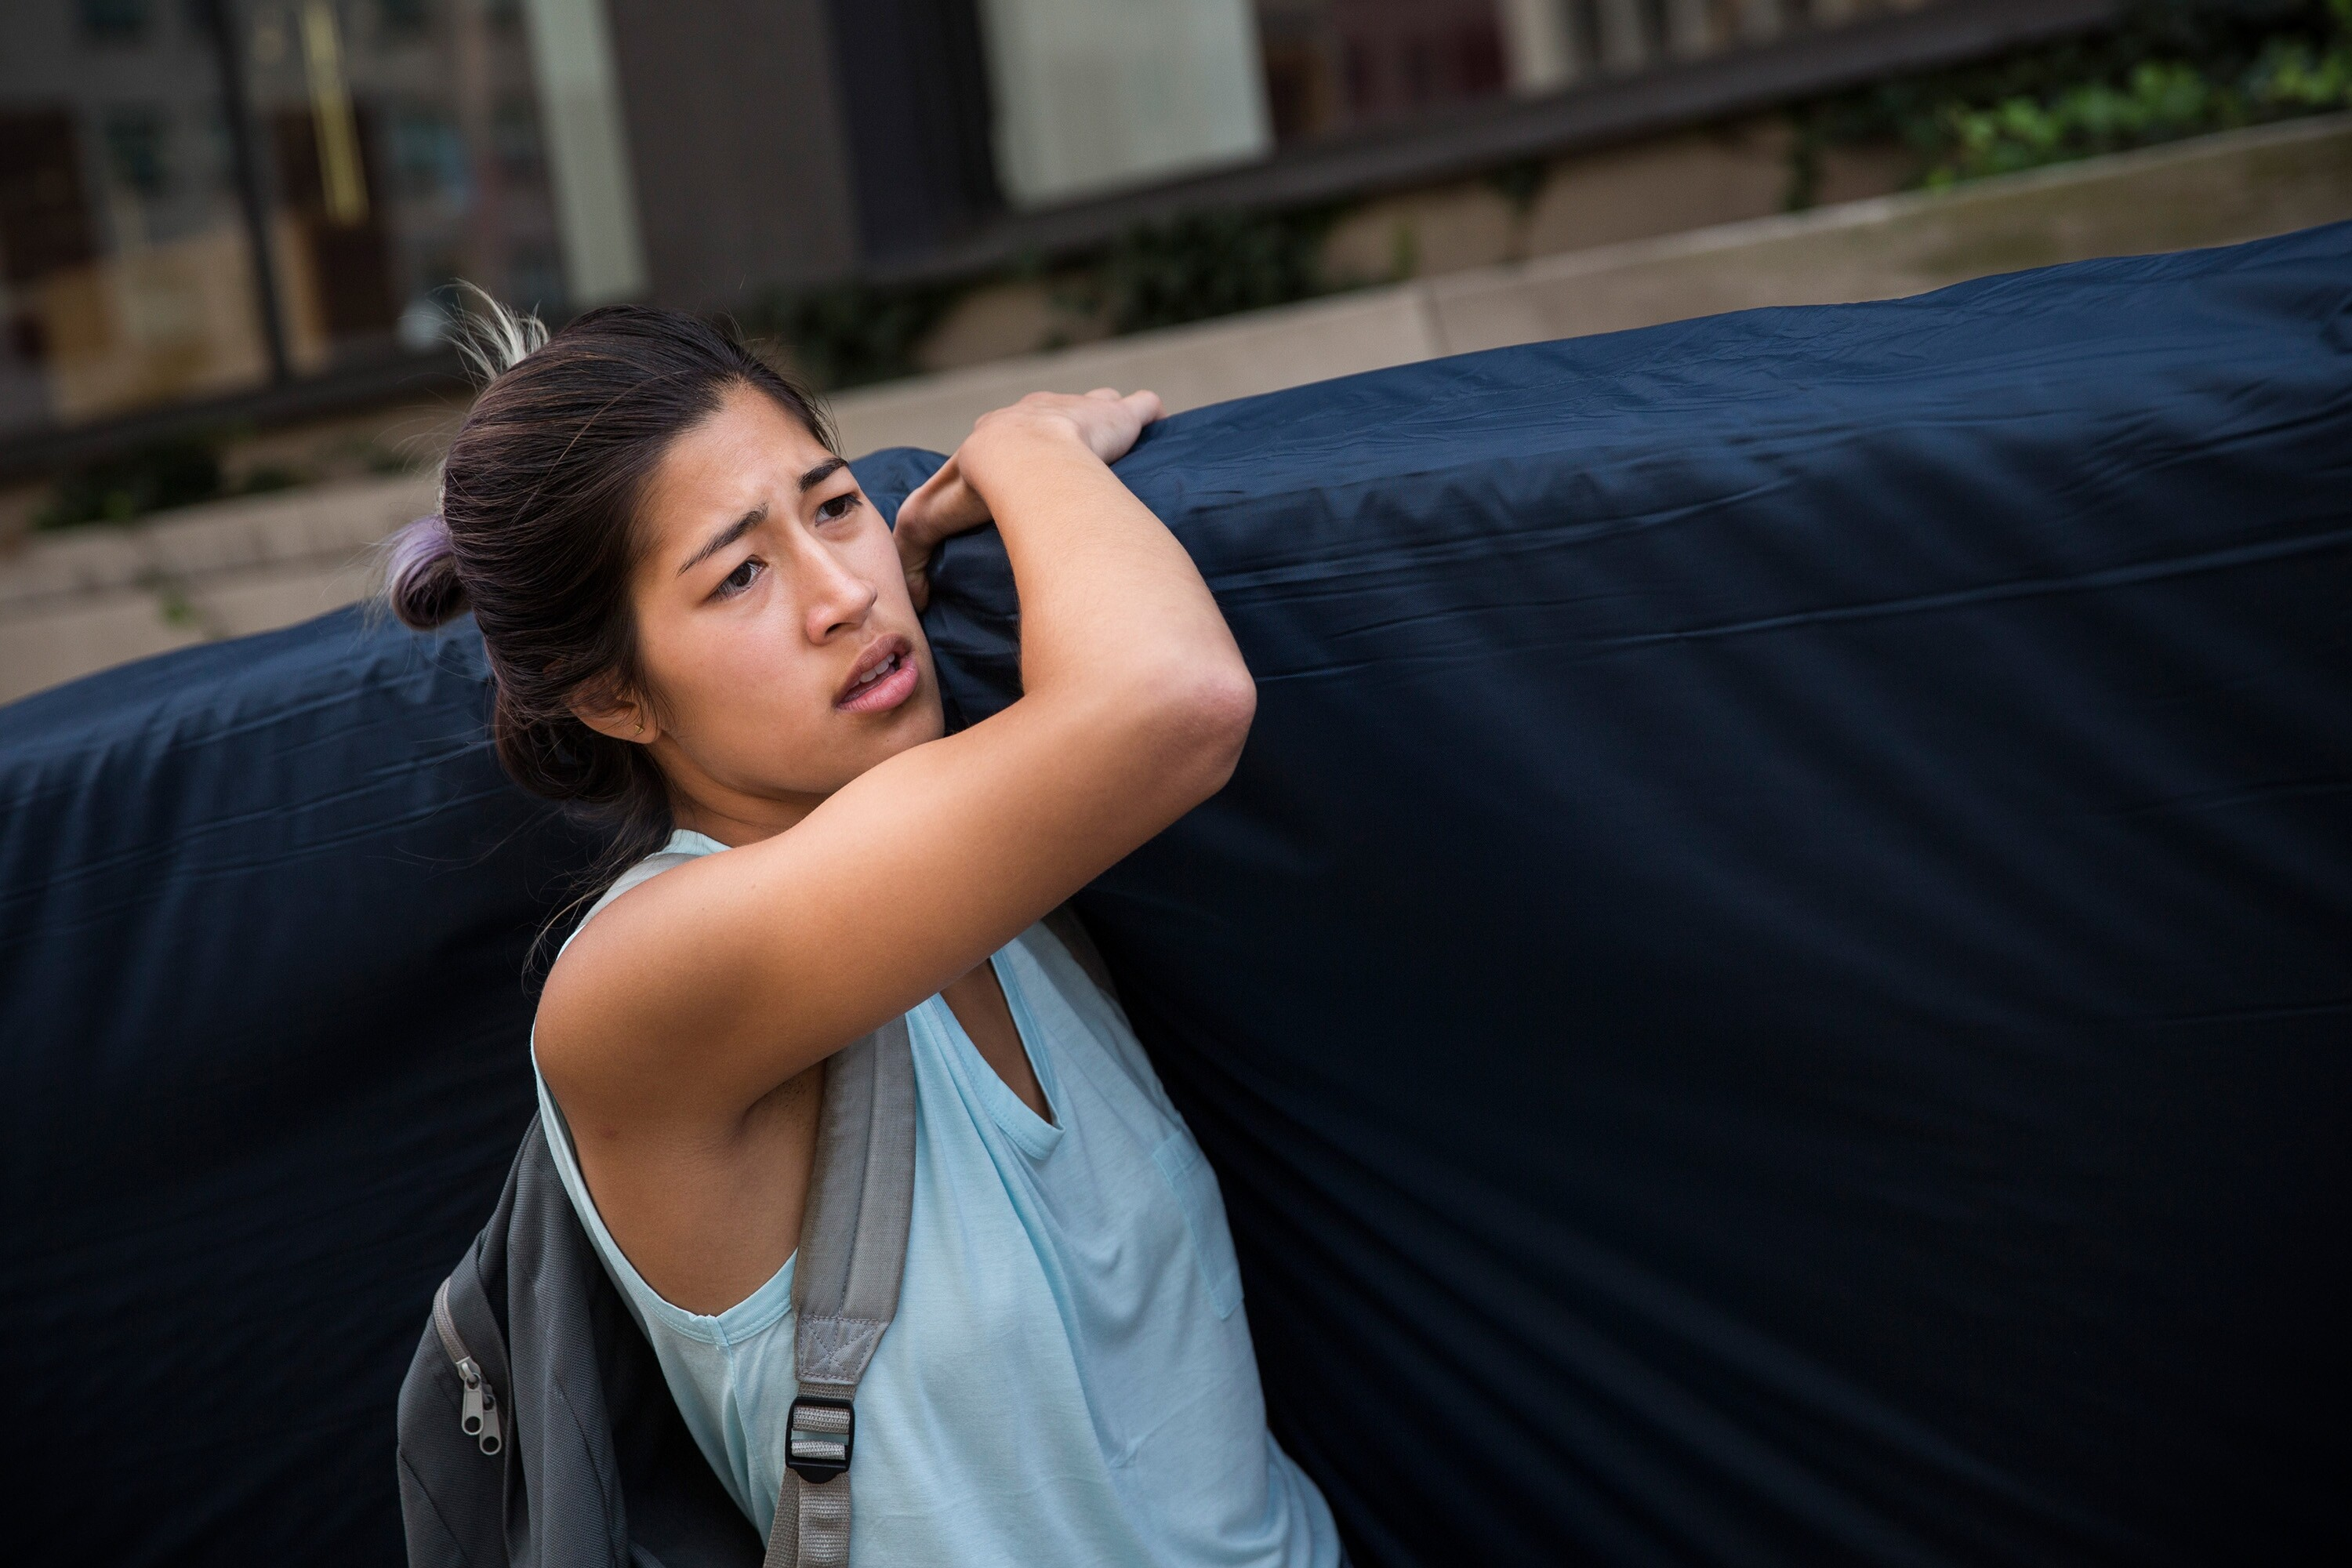 columbia mattress girl looking to cash in on art project